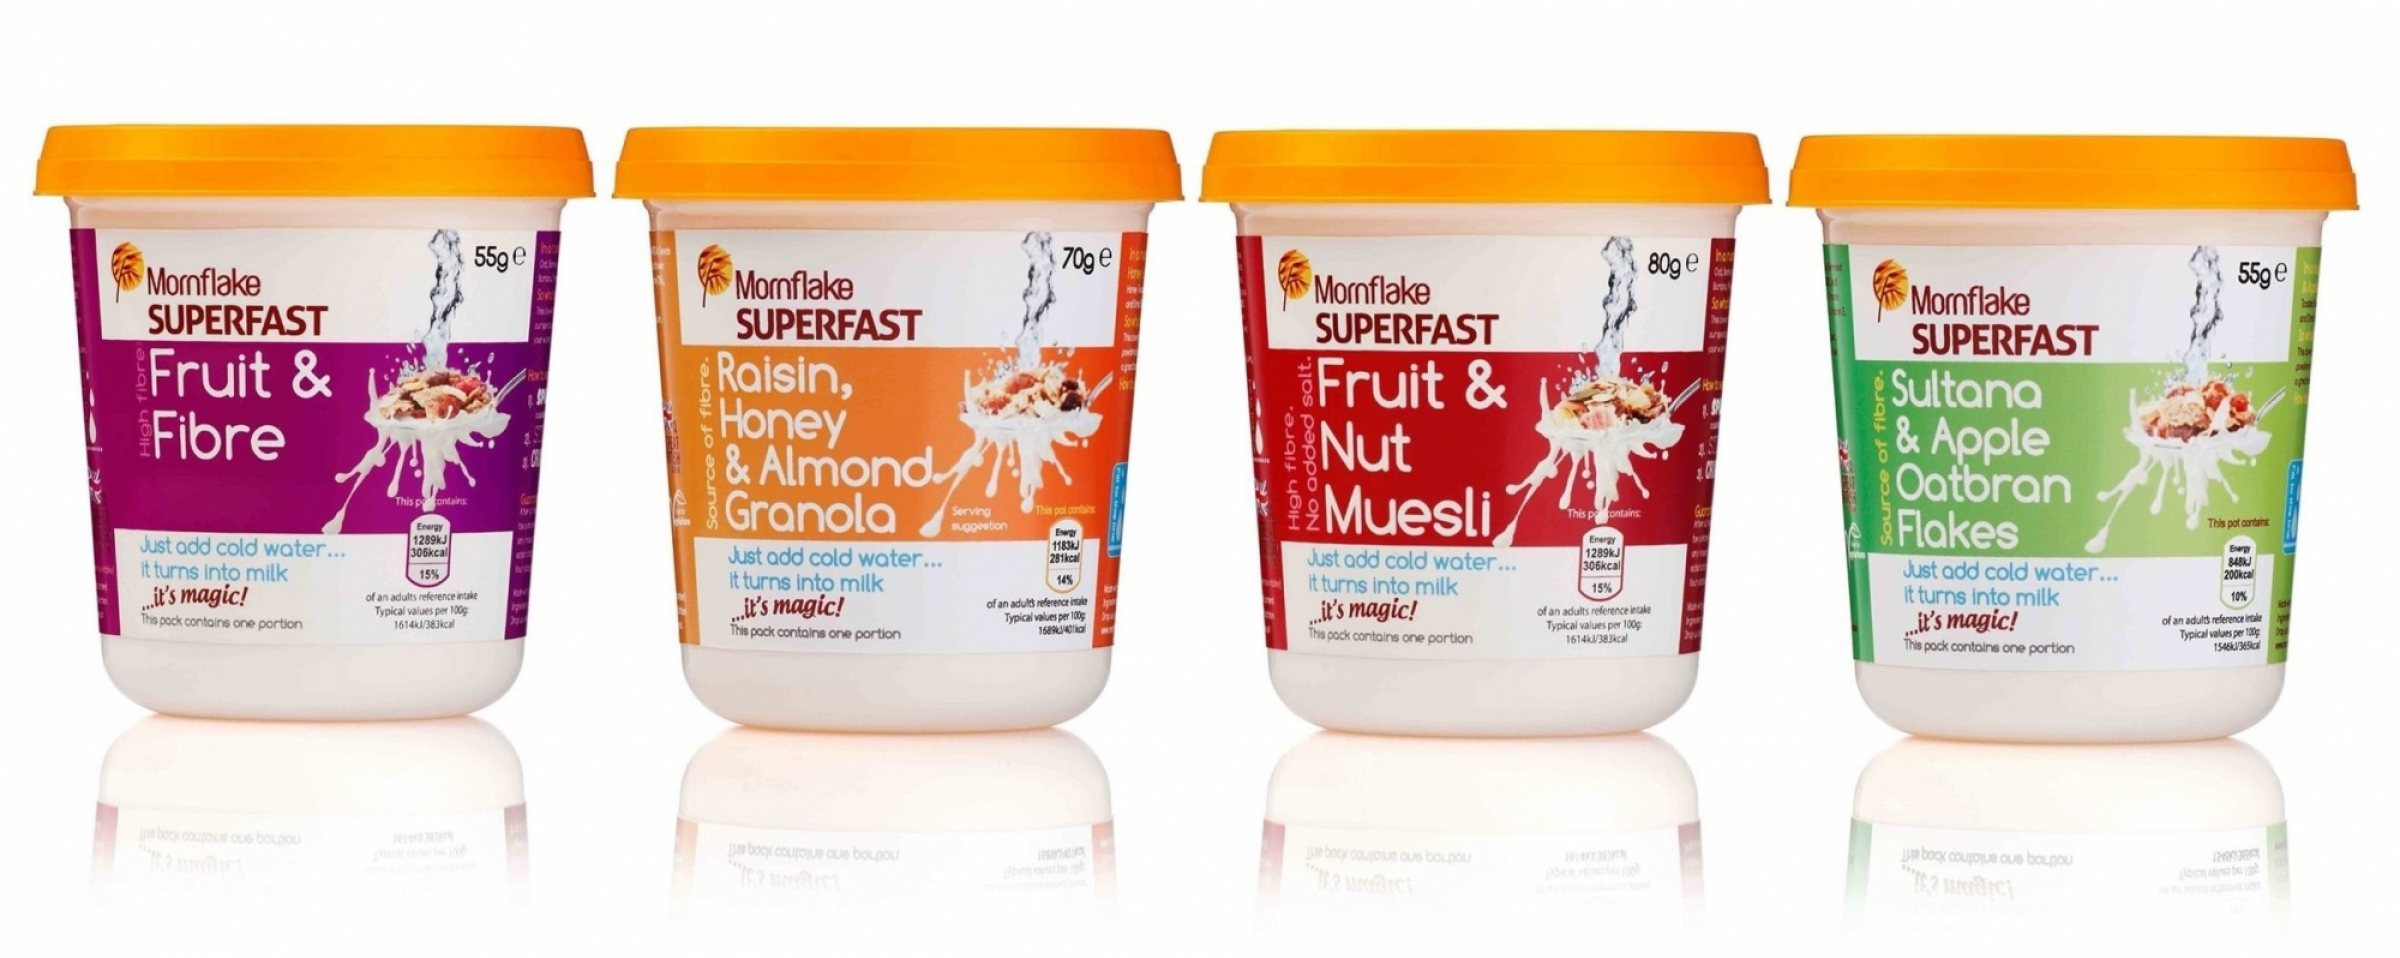 Mornflake Superfast Pots packaging design by Sunny Thinking